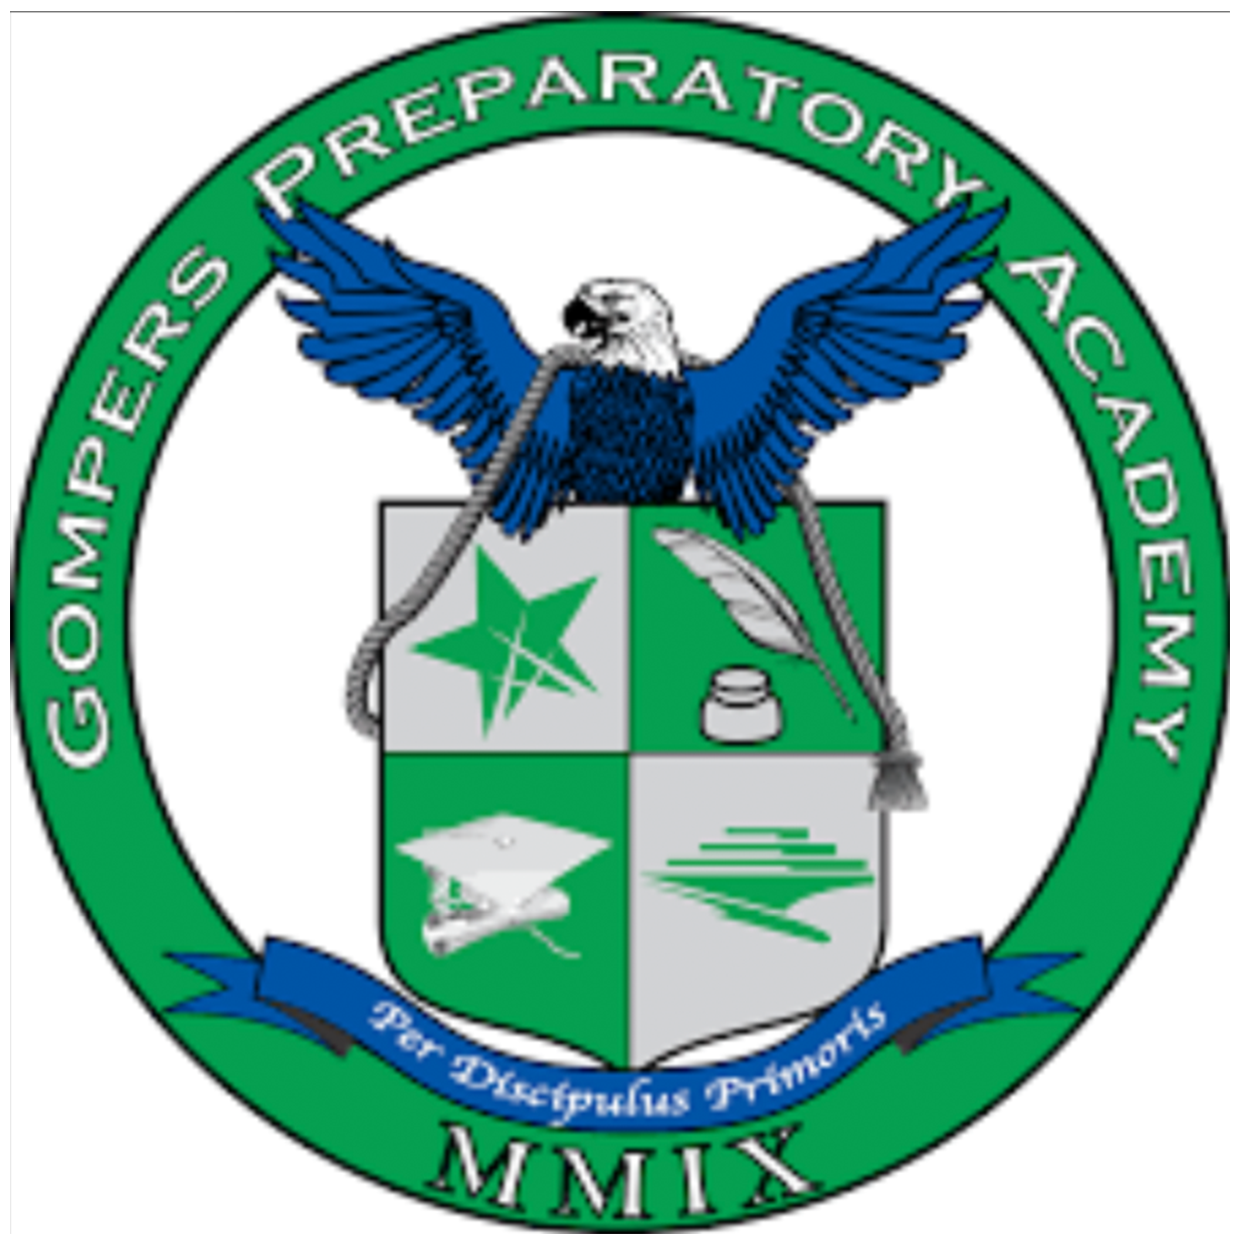 Gompers Prep Academy Eagles